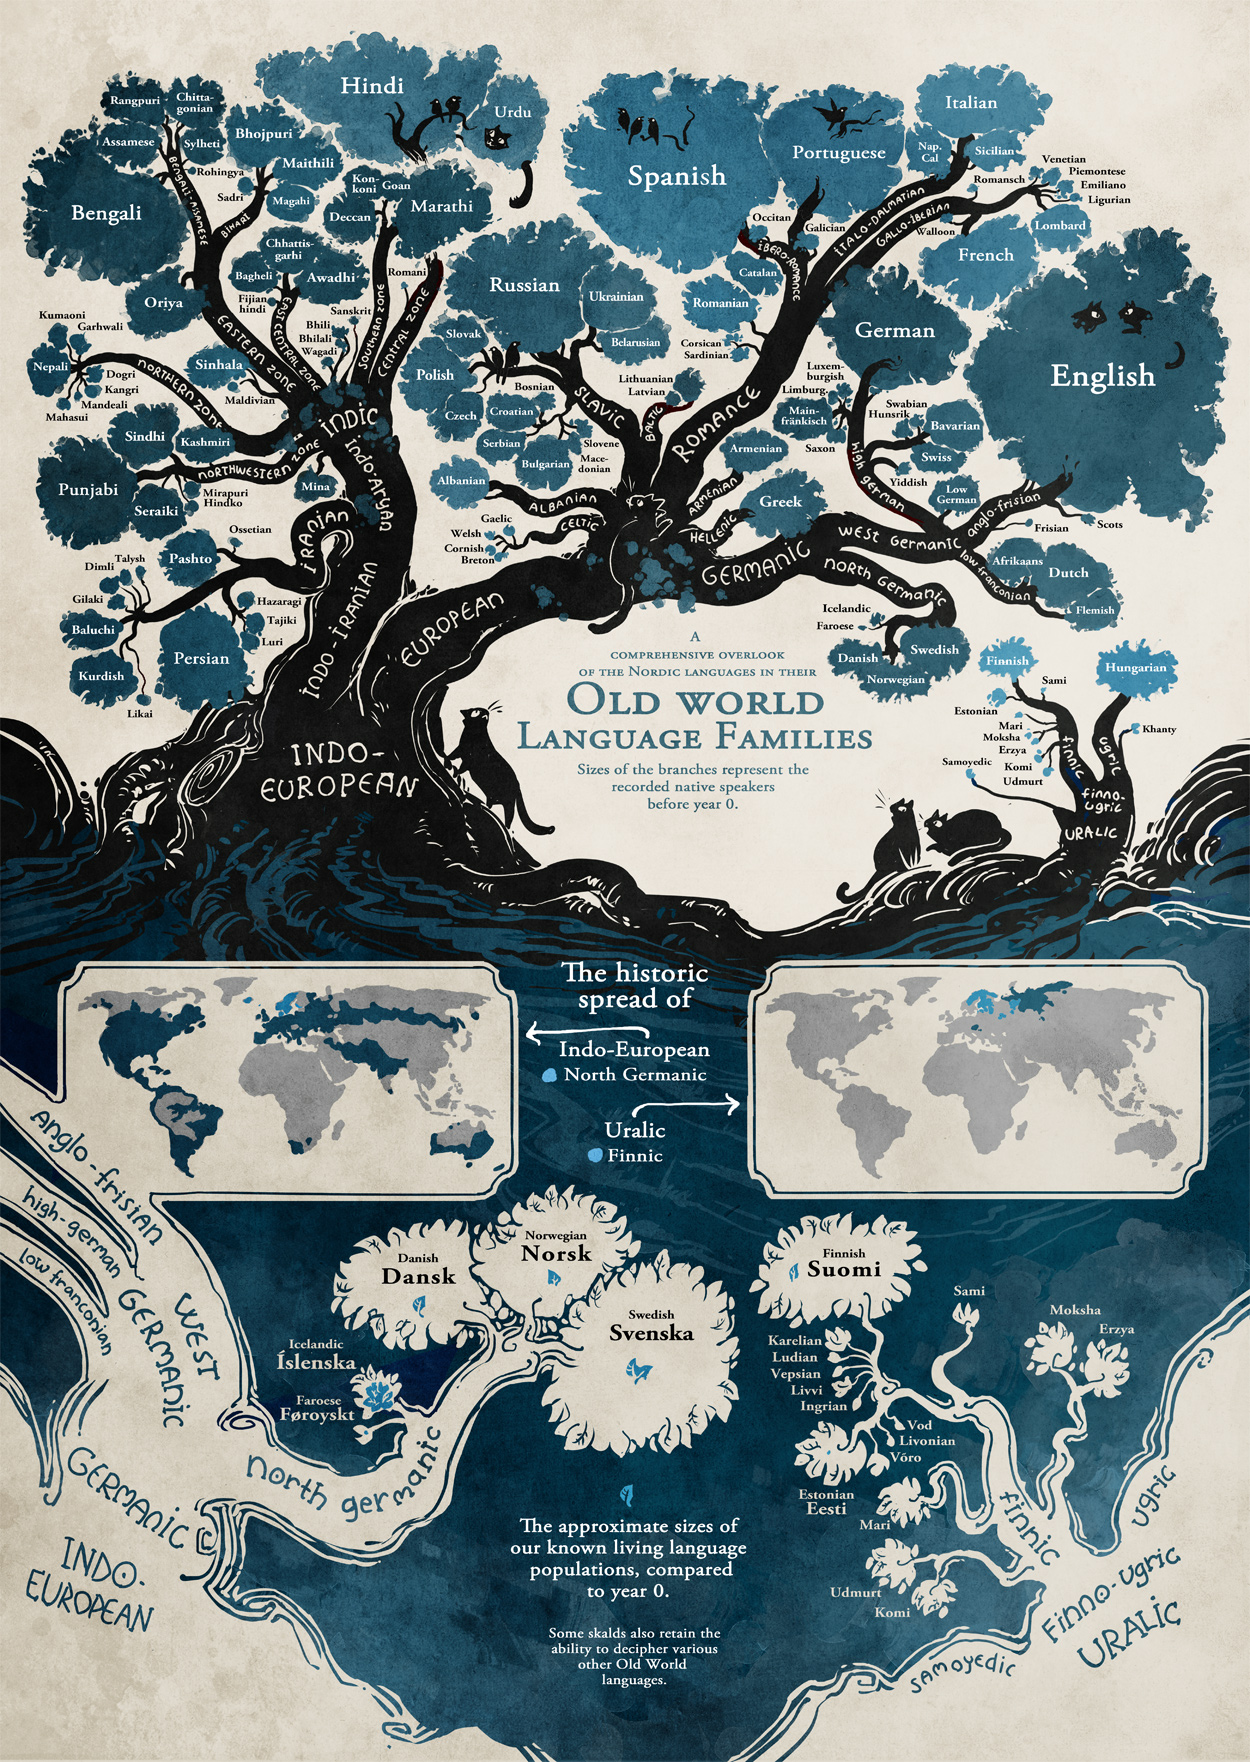 Old world language family tree